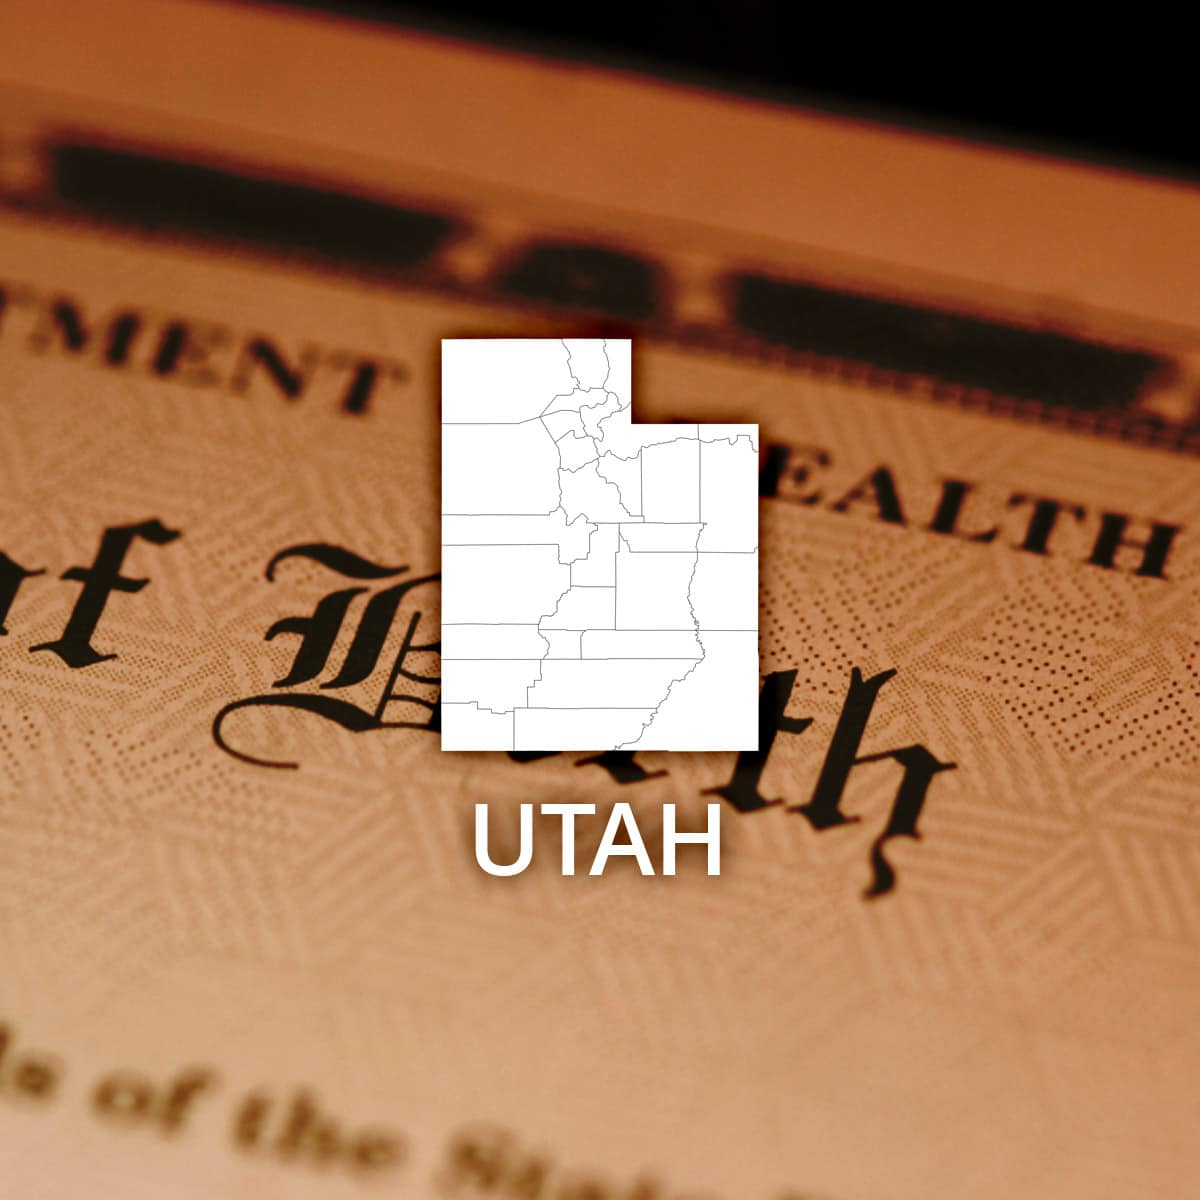 Where to Obtain a Utah Birth Certificate